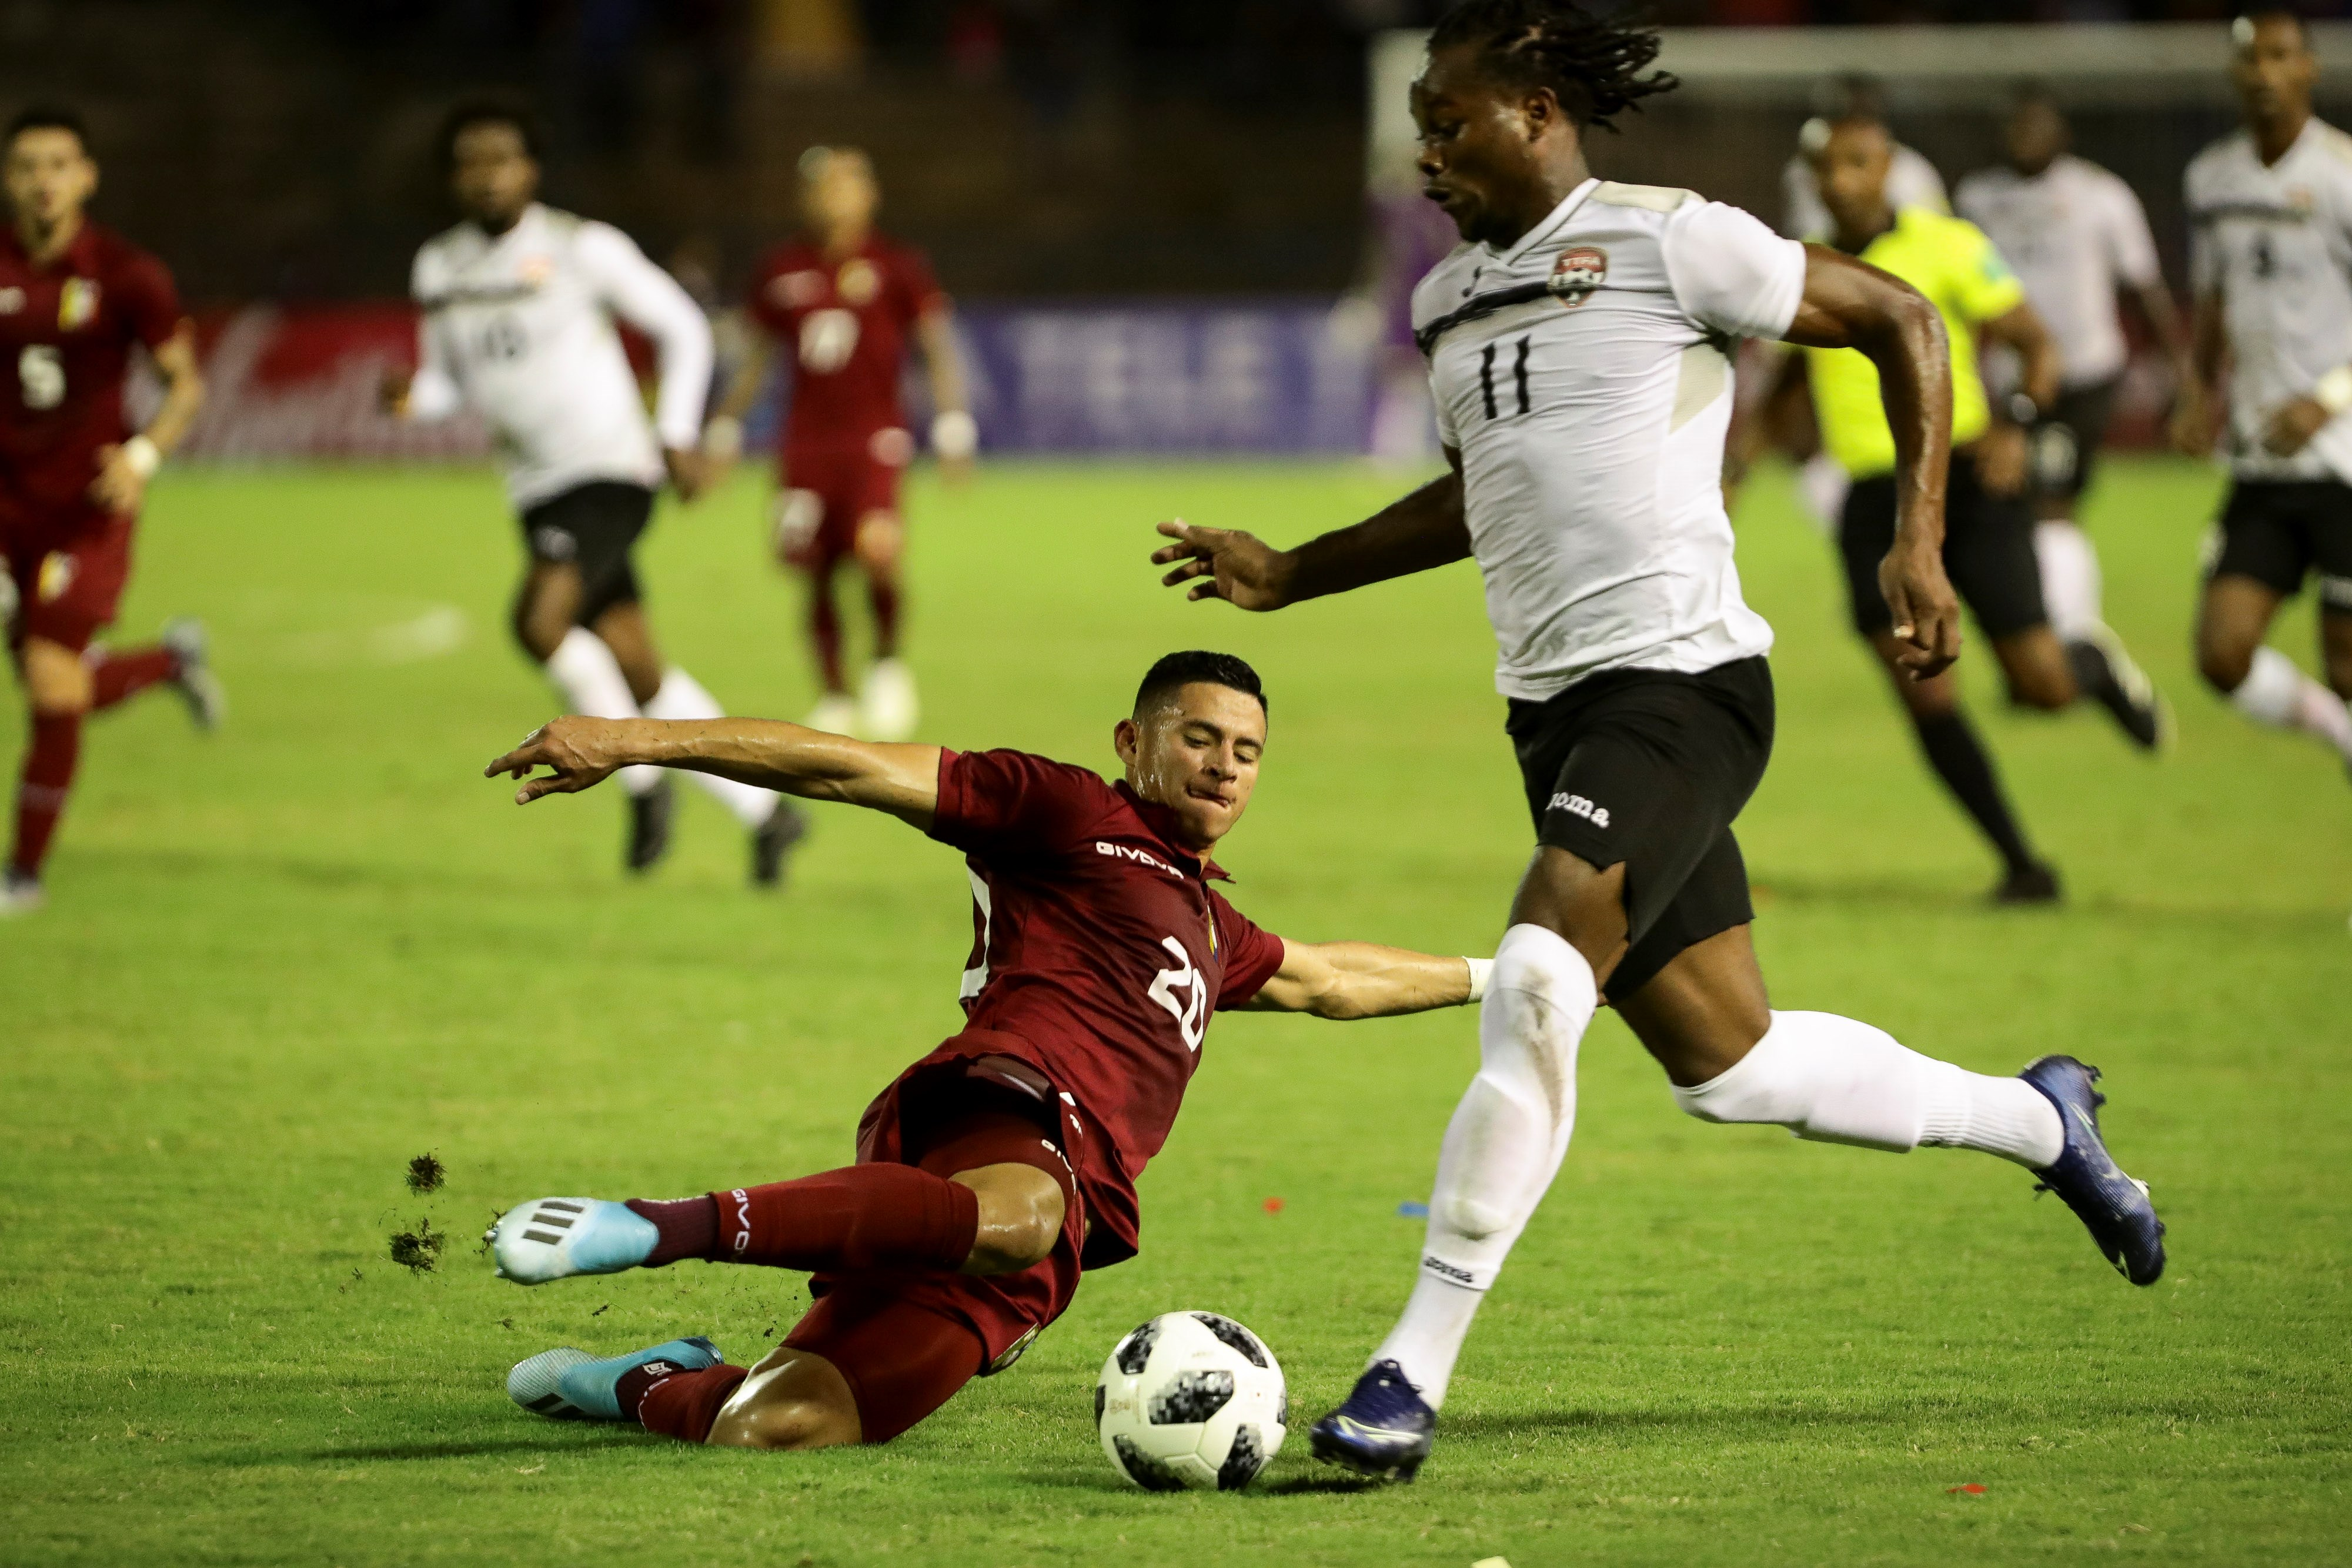 Venezuela's Ronald Hernandez (L) vies for the ball with Trinidad and Tobago's Levi Garcia (R) during a friendly.